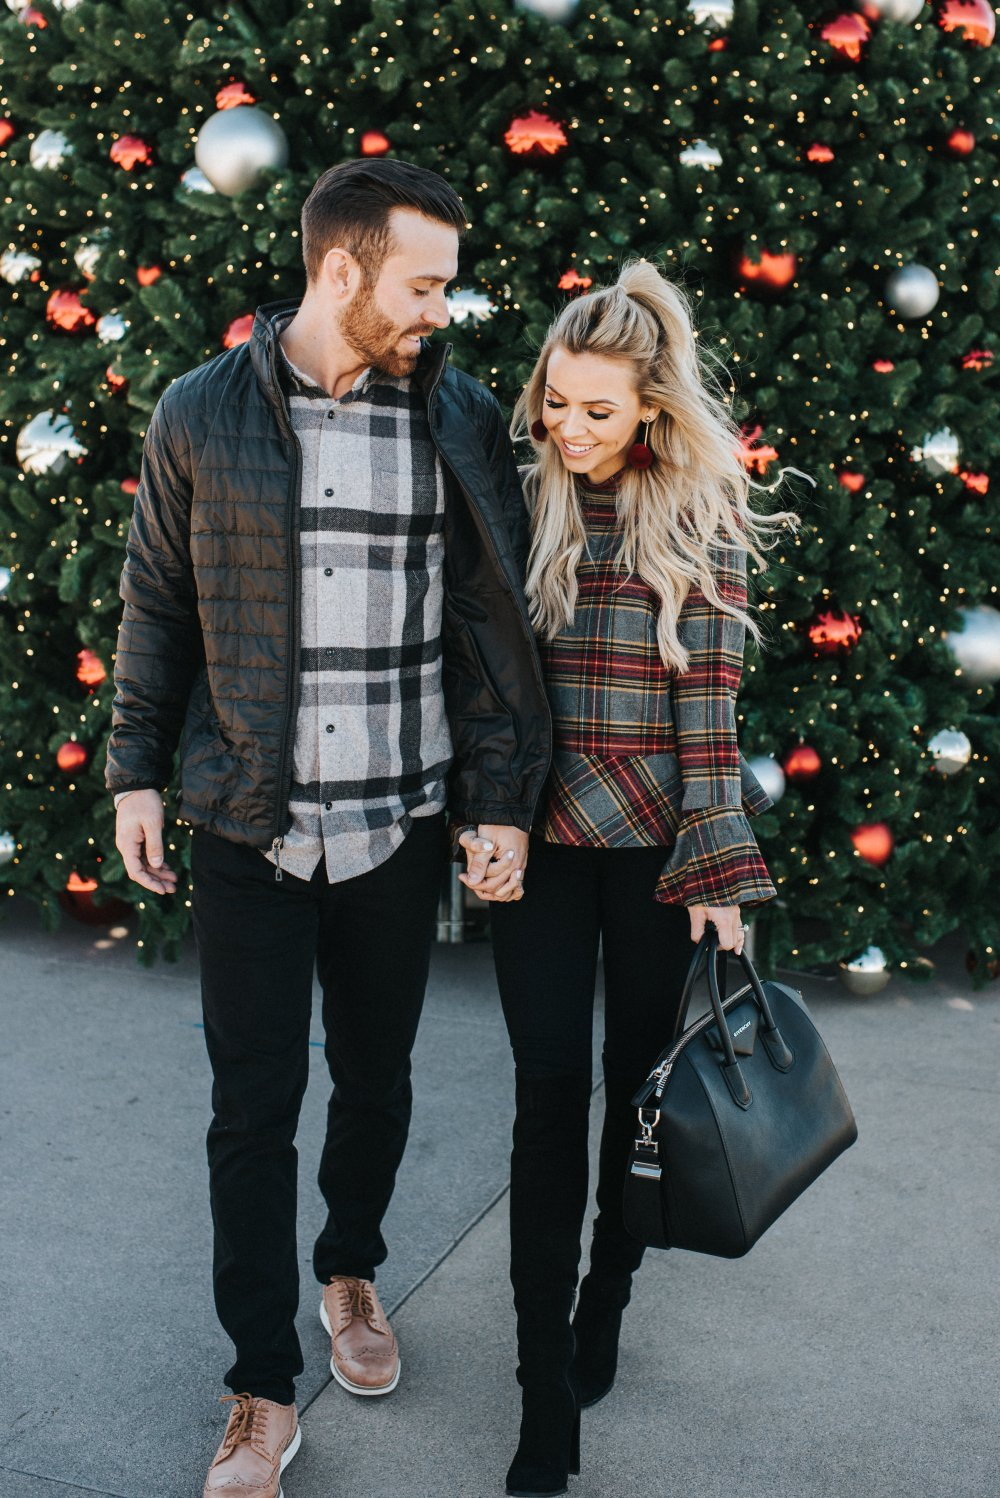 Holiday looks for couples! Plus gift ideas for guys